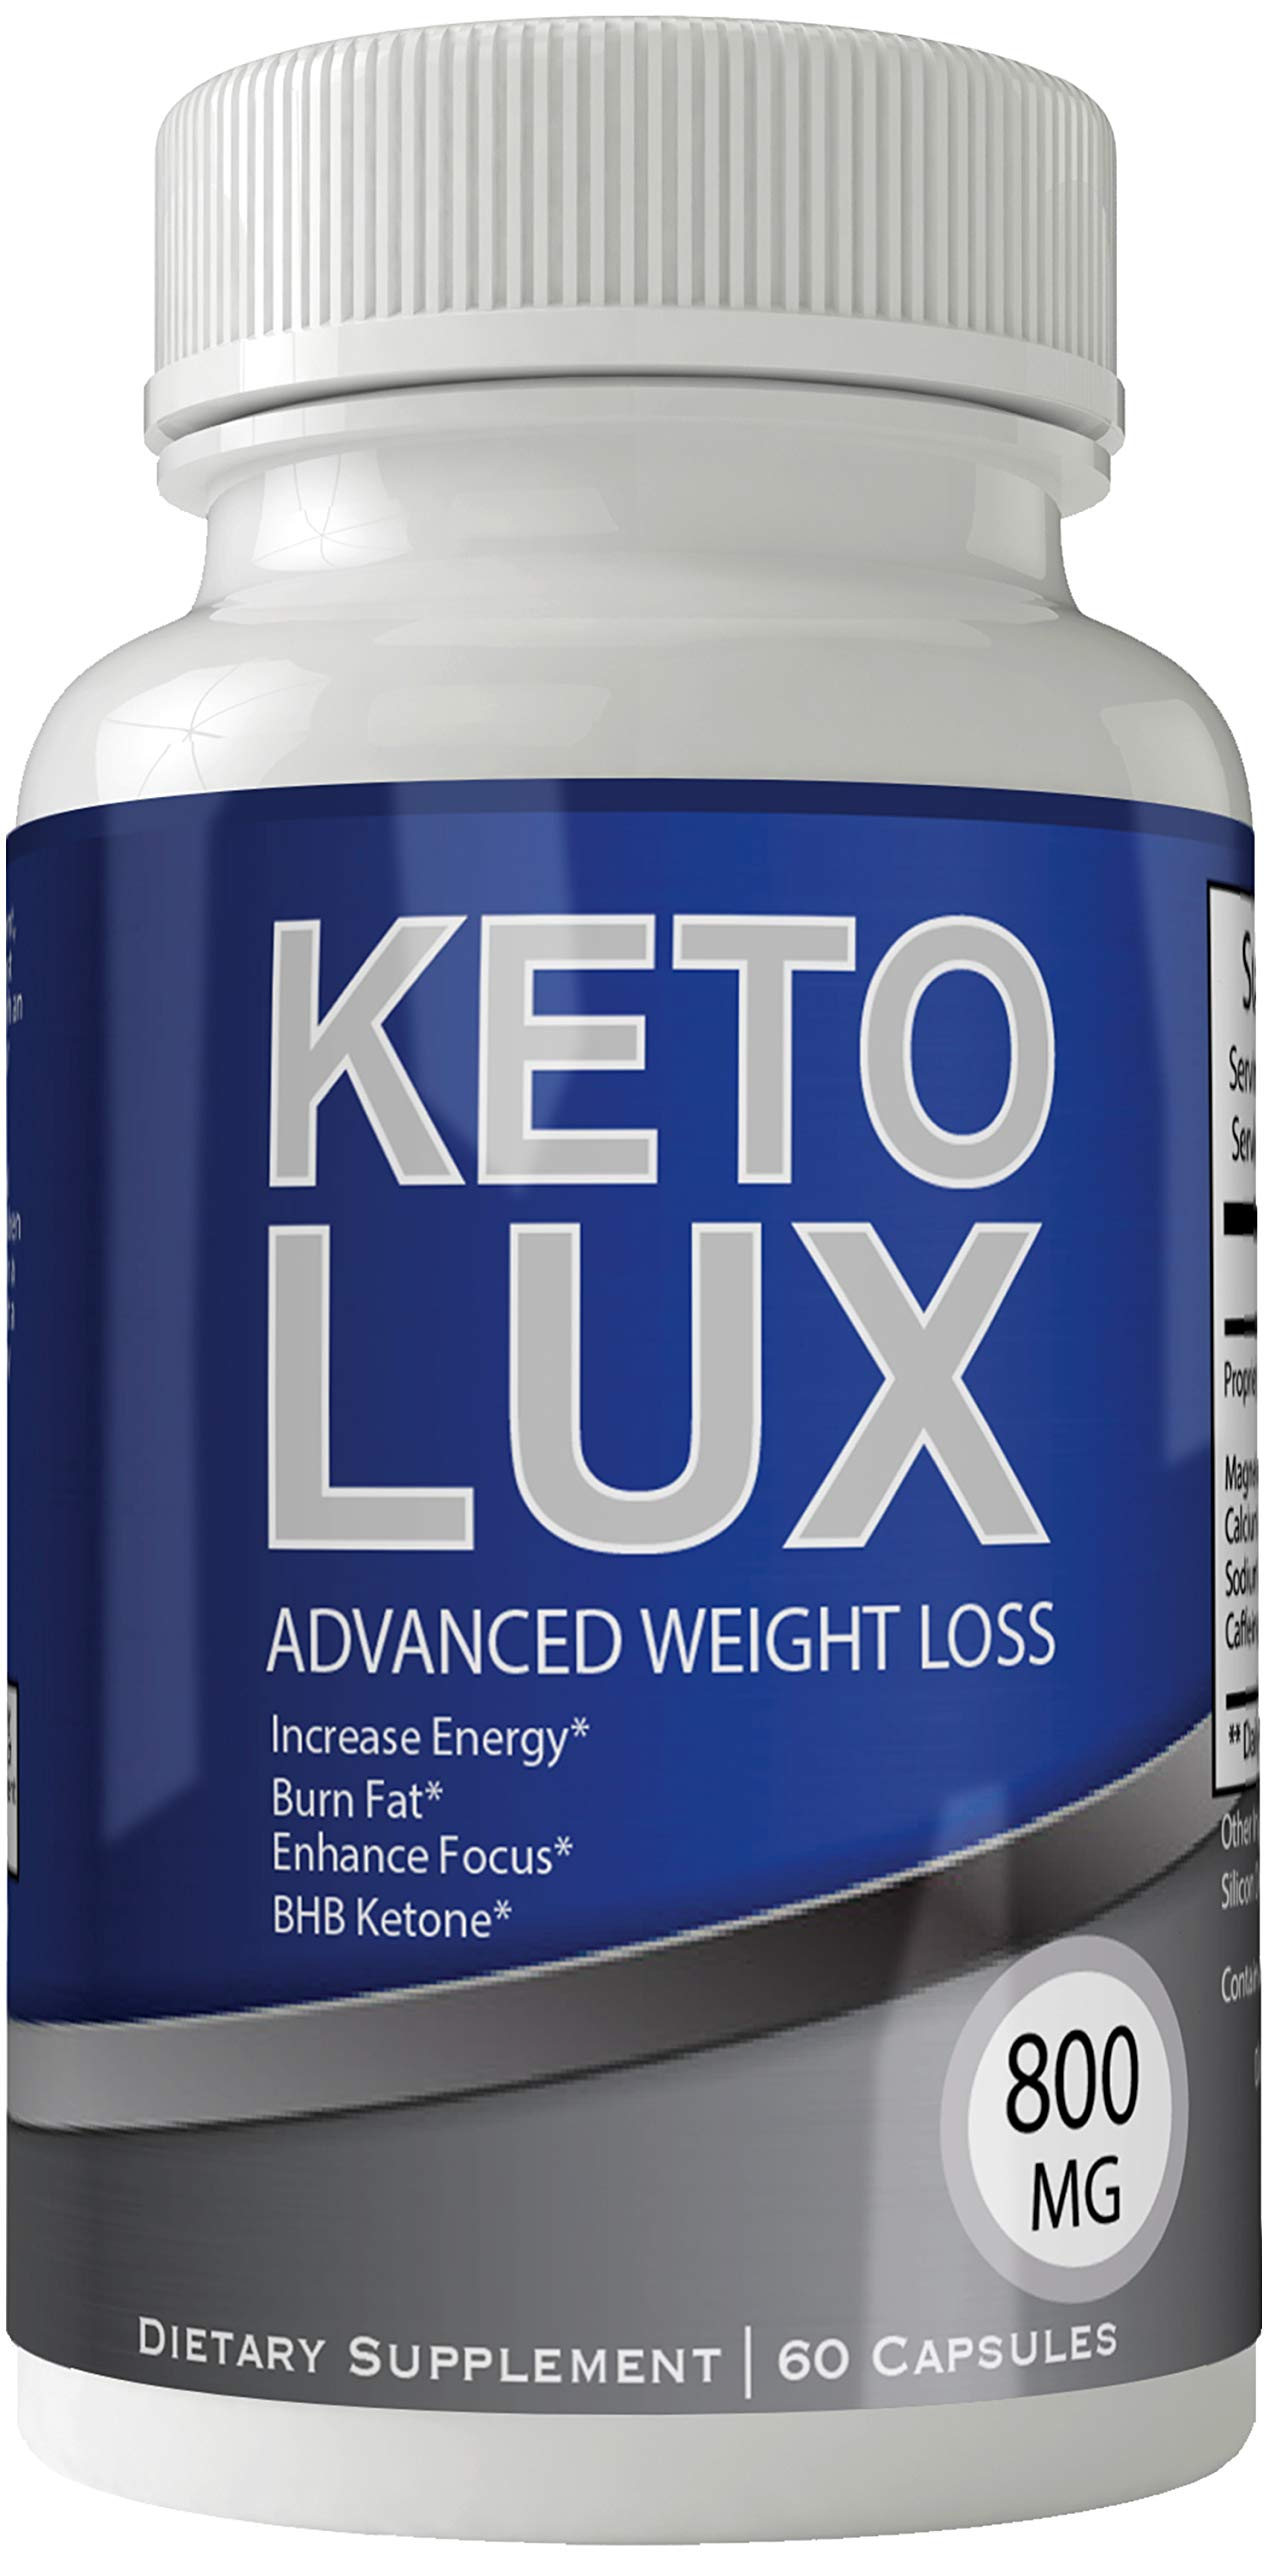 Keto Lux Pills Advance Weight Loss Supplement Appetite Suppressant Natural Ketogenic 800 mg Formula with BHB Salts Ketone Diet Capsules to Boost Metabolism, Energy and Focus